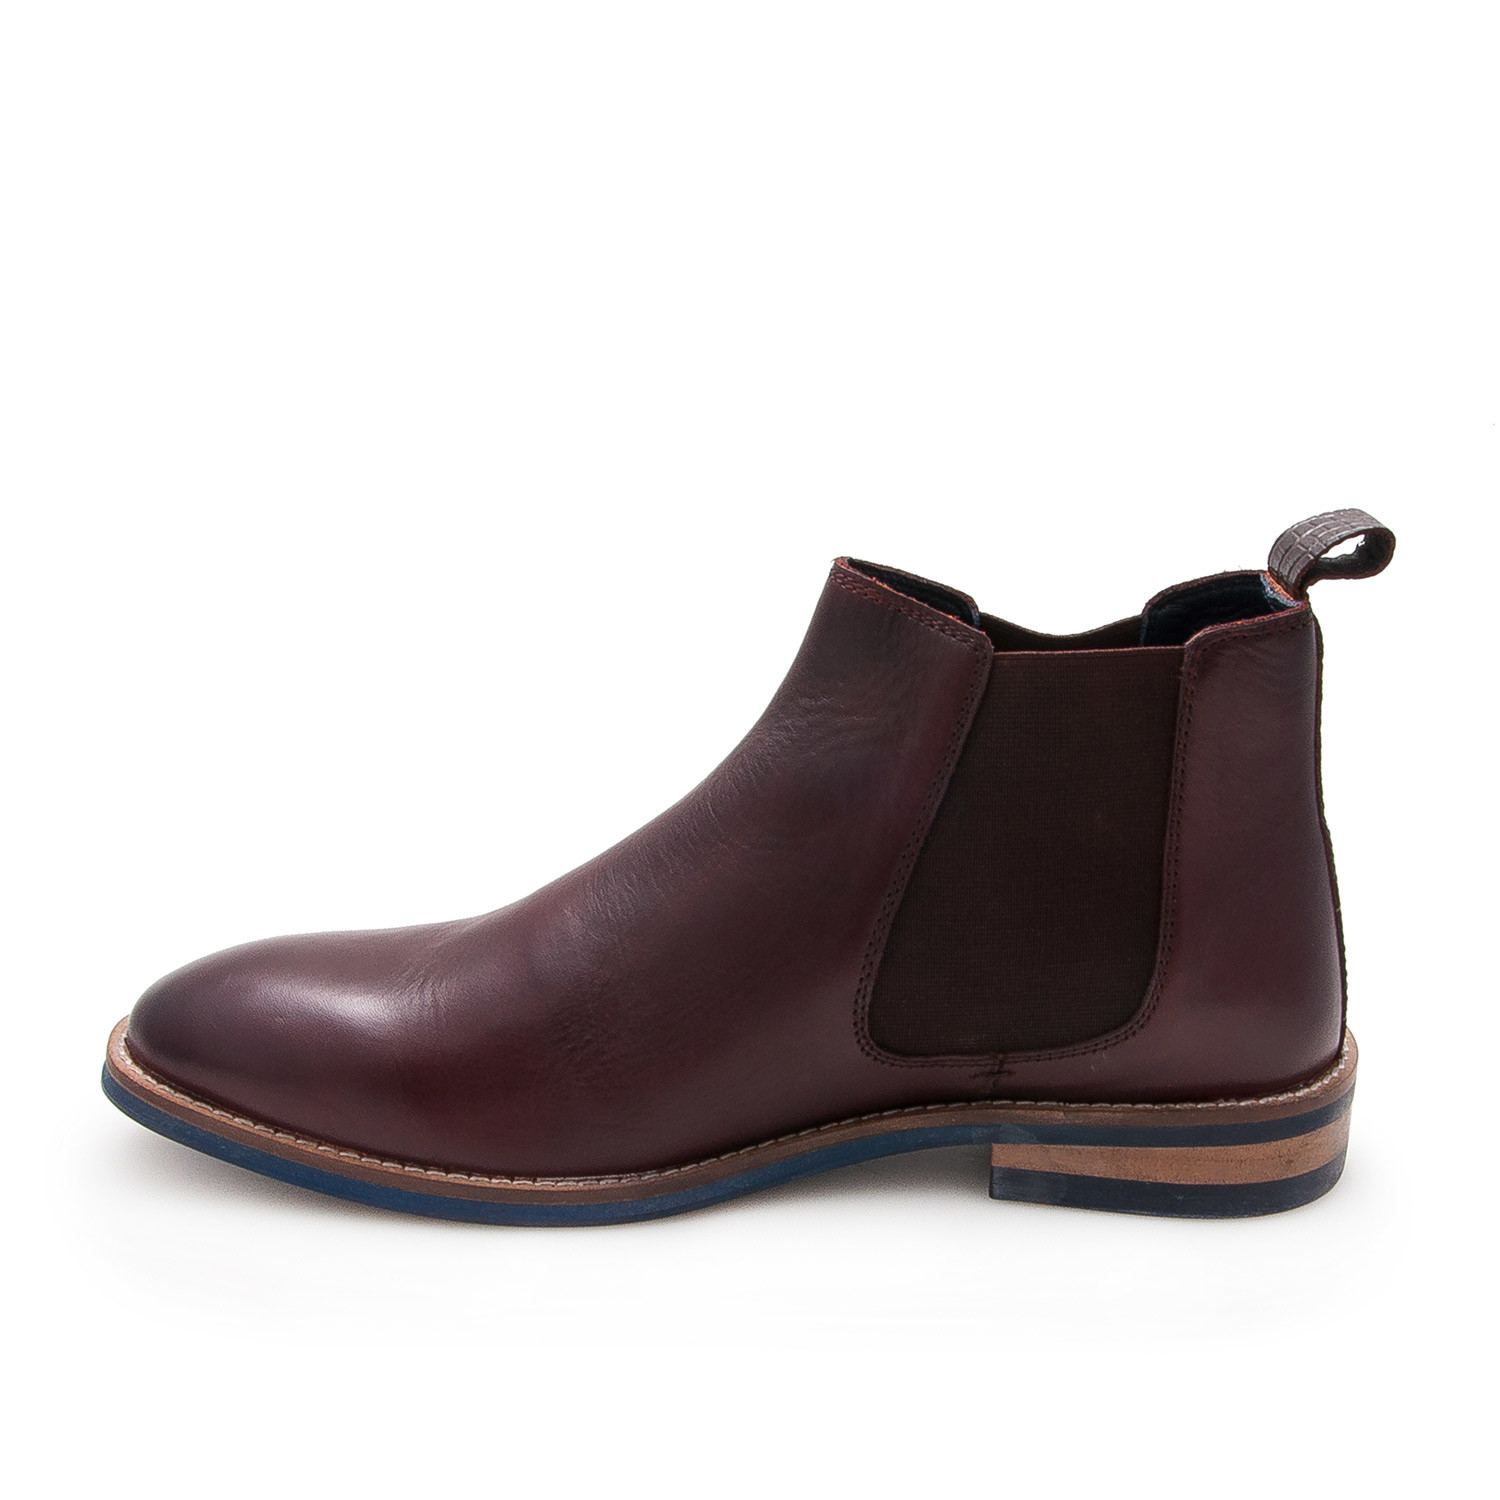 connor ankle boot bordeaux euro 40 zerimar touch of modern. Black Bedroom Furniture Sets. Home Design Ideas